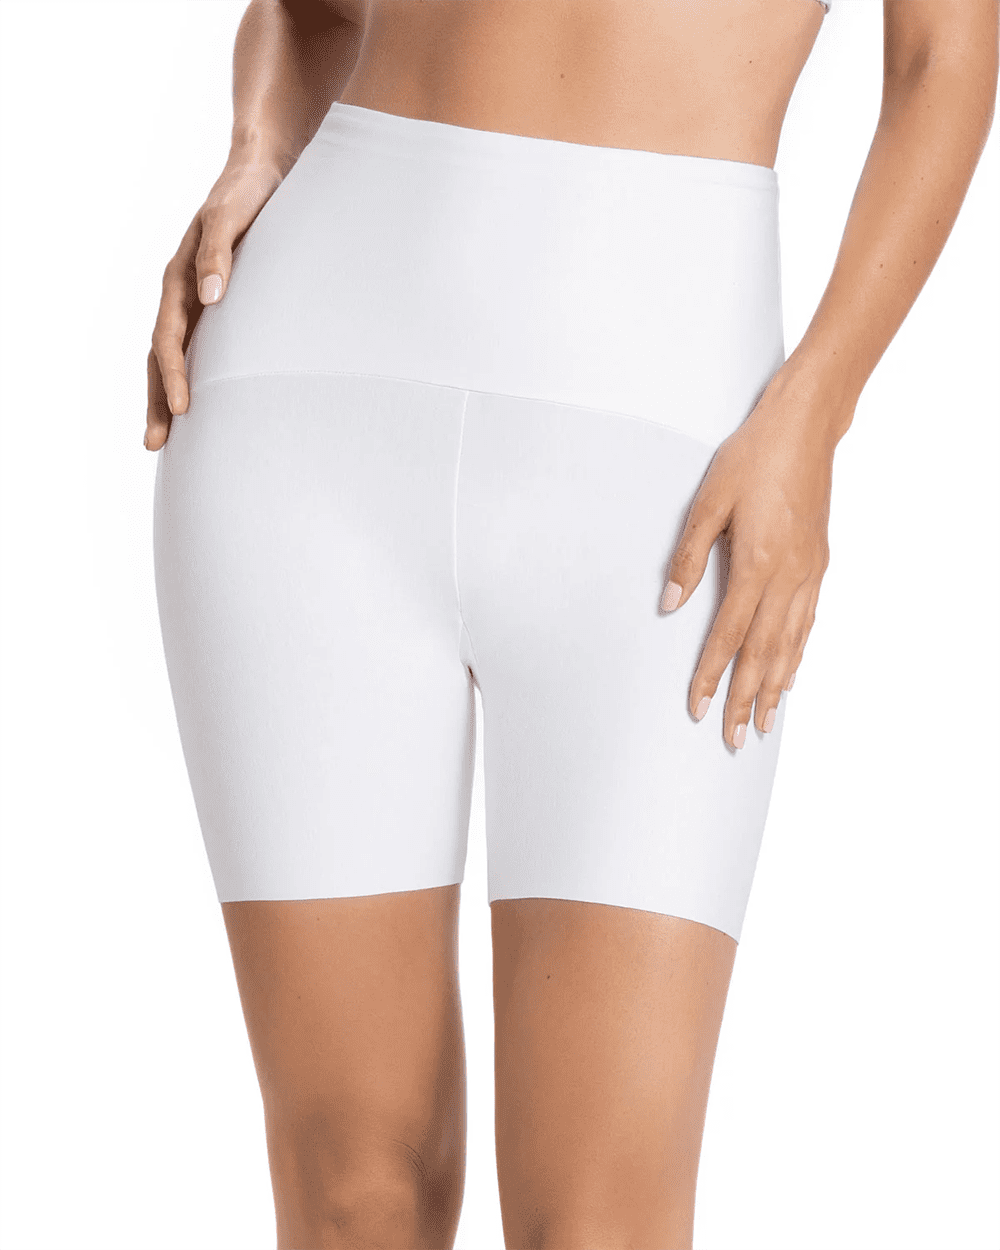 35d689d5f7 Leonisa High Waist Shaper Shorts - Australia s Compression Garment ...